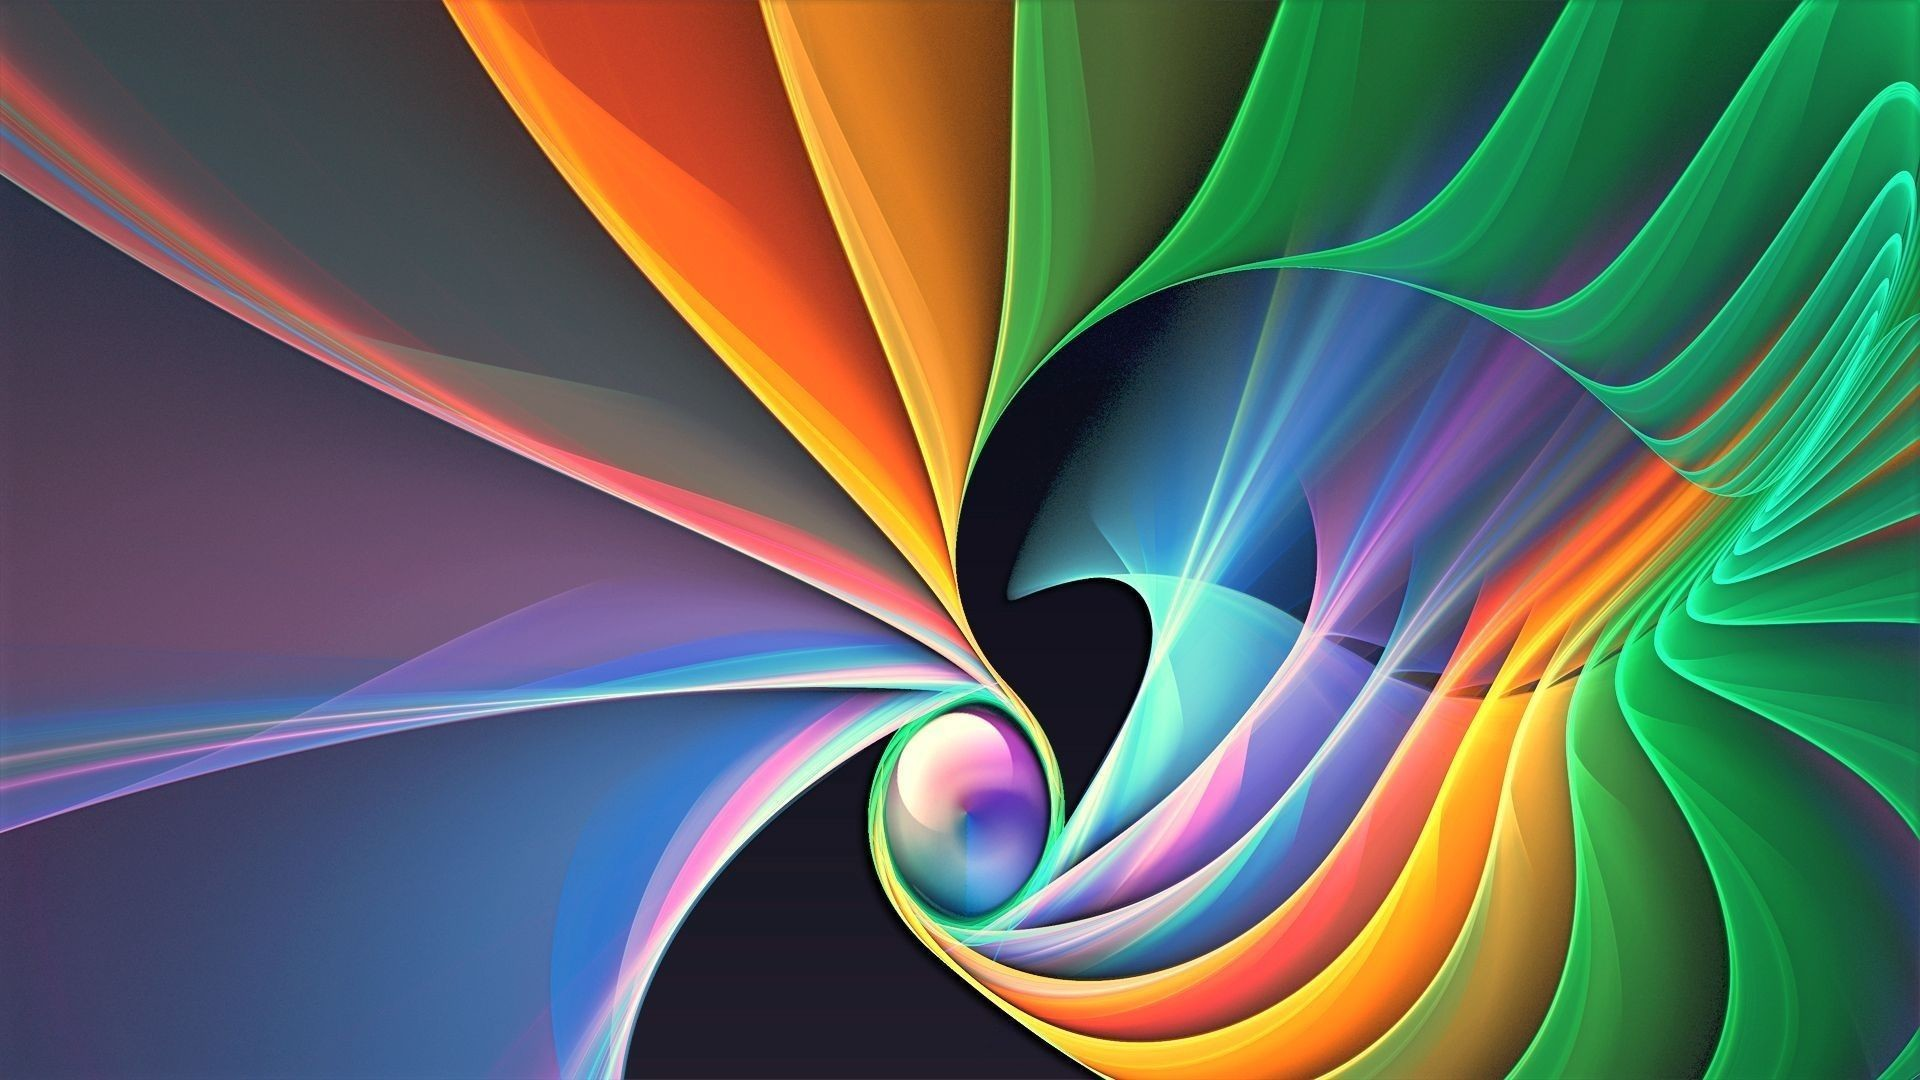 Bright colored backgrounds 66 images - Colorful background hd ...